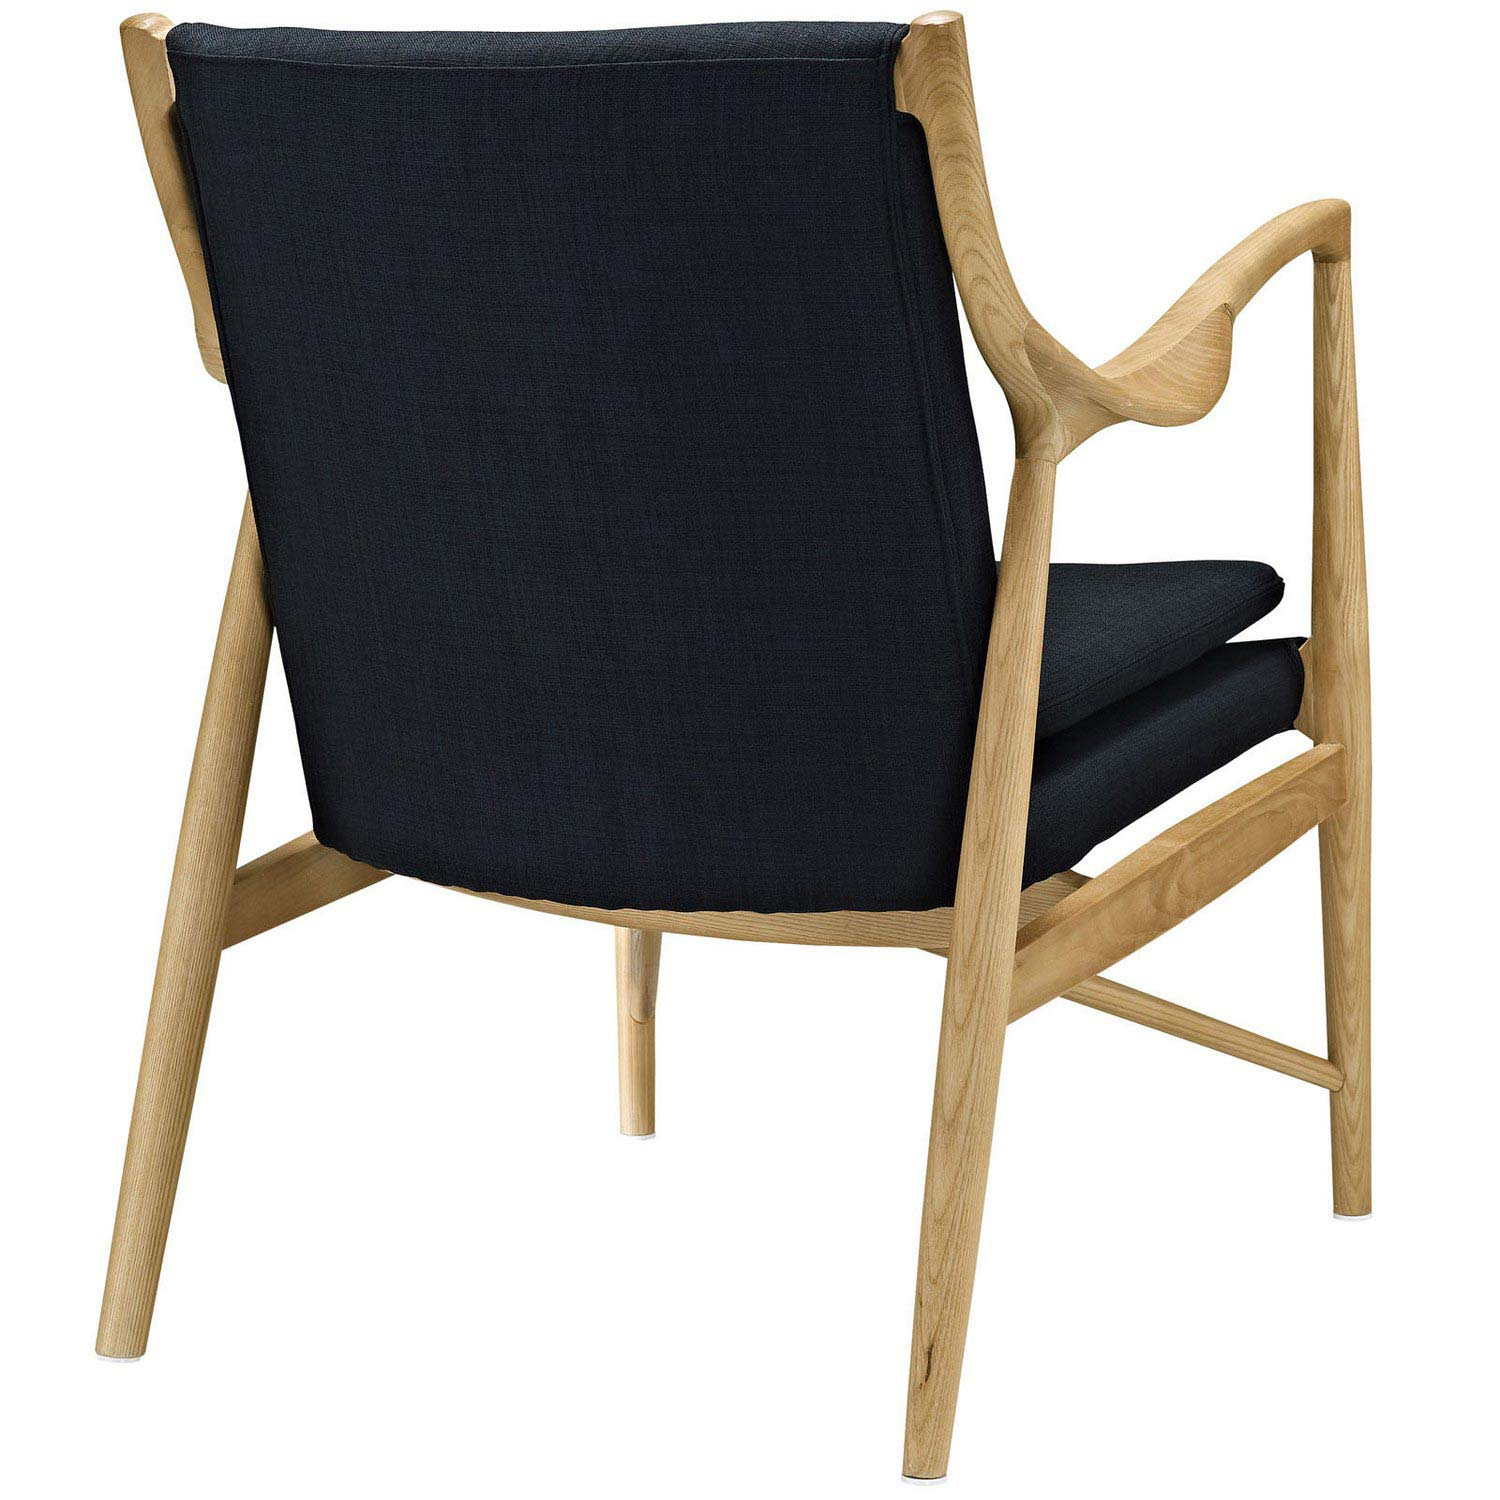 Modway Makeshift Upholstered Lounge Chair - Birch Black